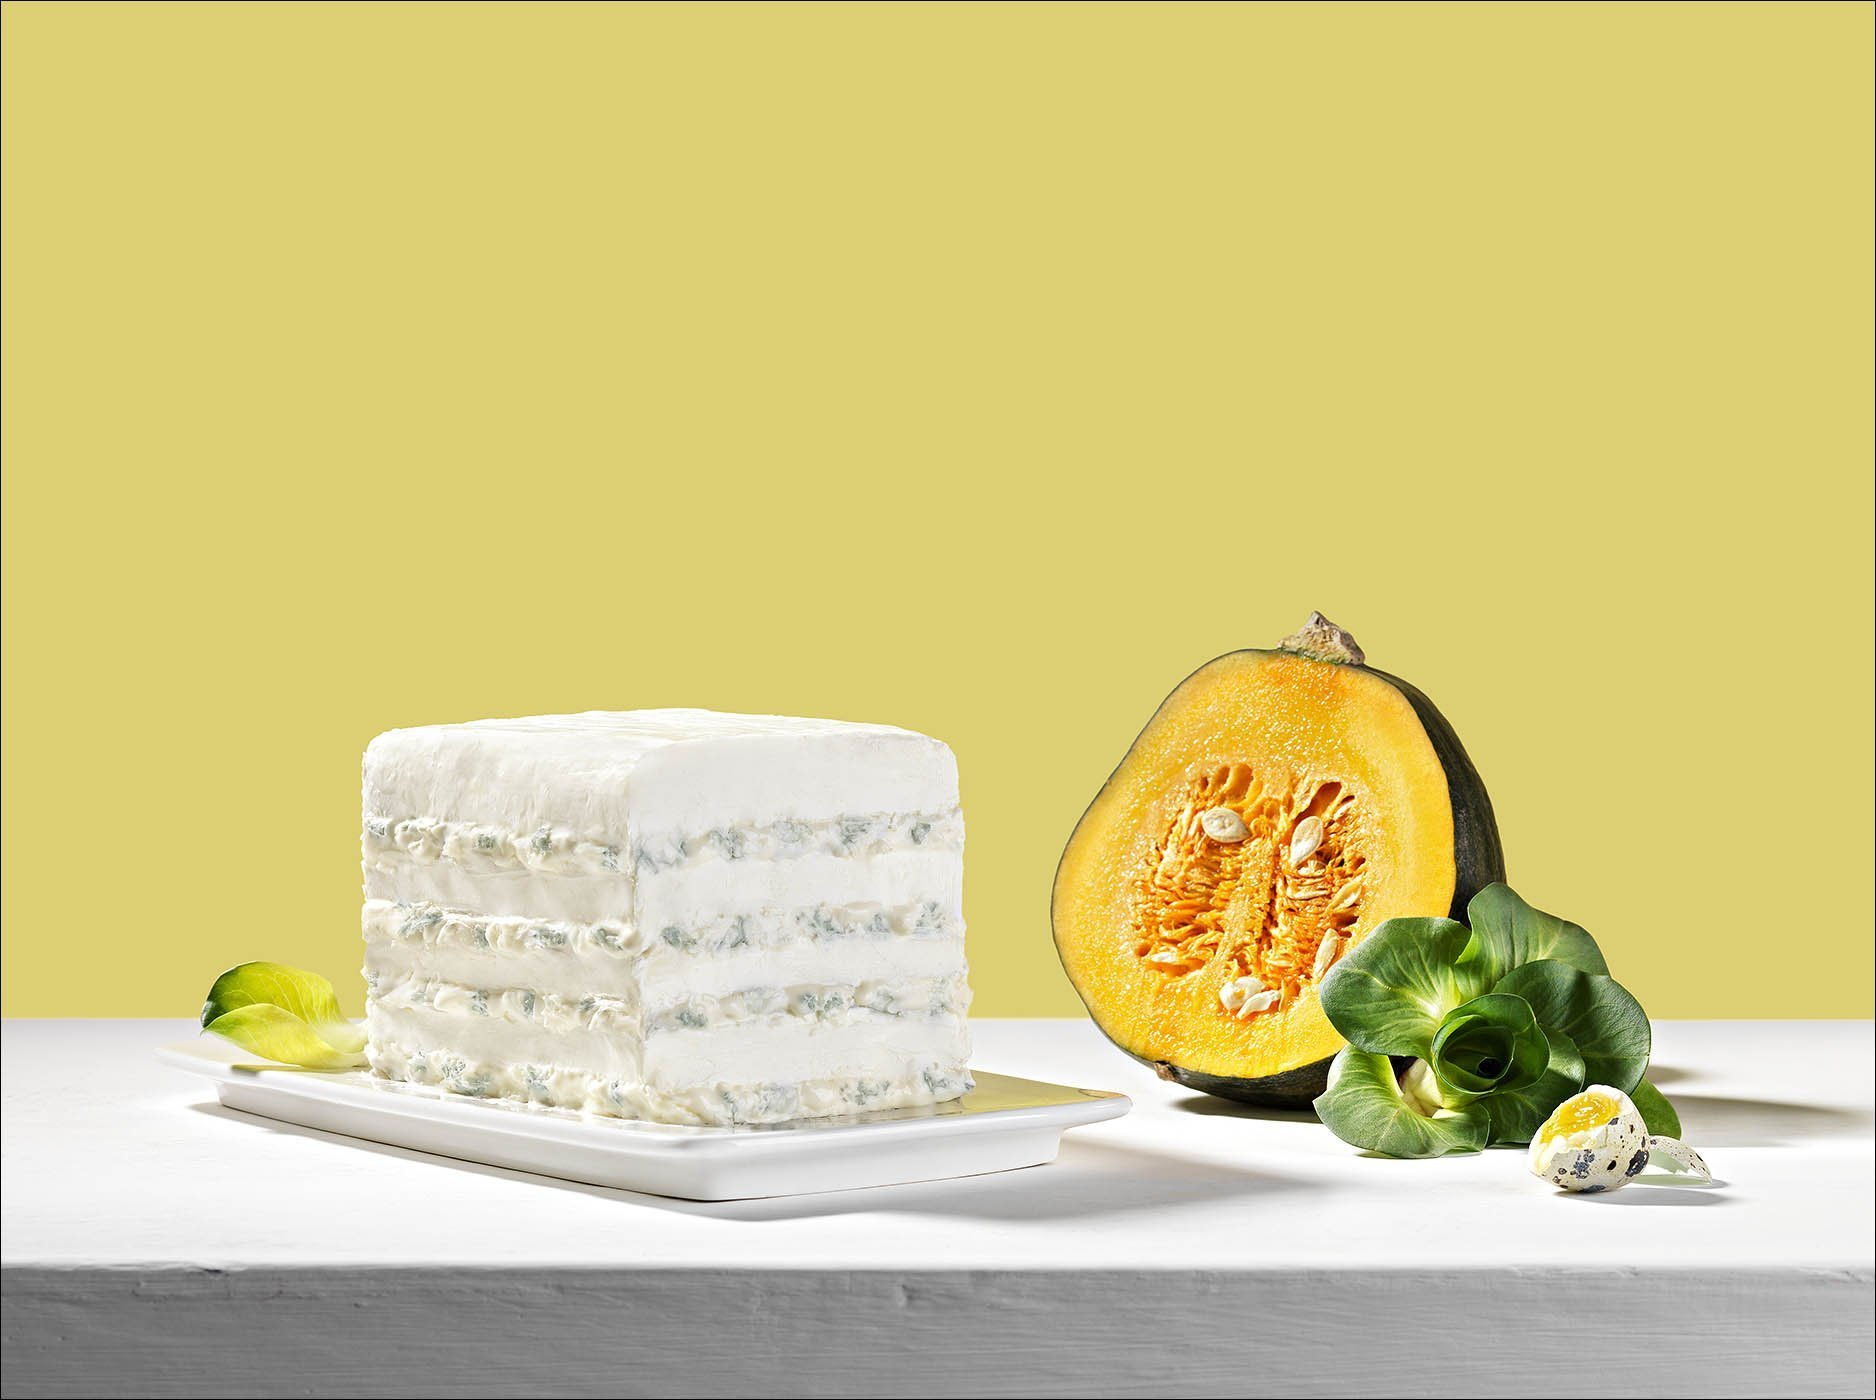 Andrea Sudati fotografo food still life | Andrea Sudati Photo Studio